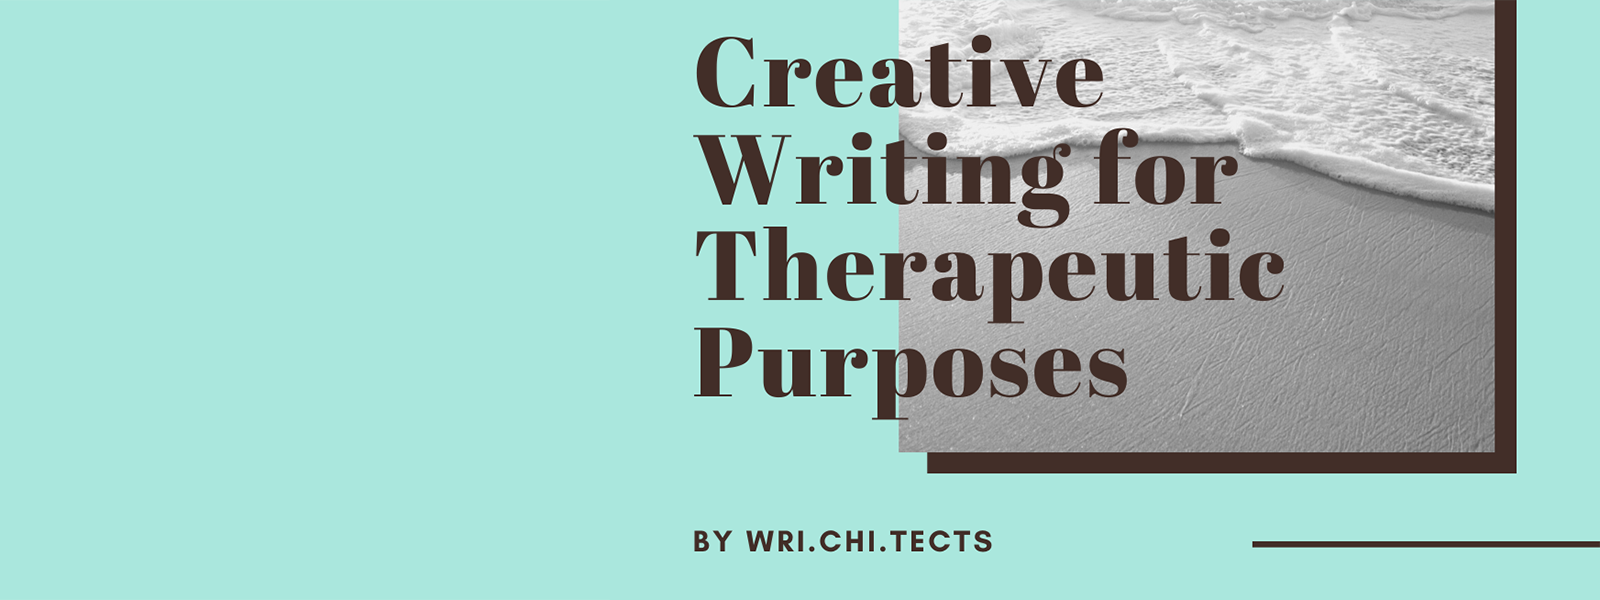 Workshop: Online - Creative Writing for Therapeutic Purposes